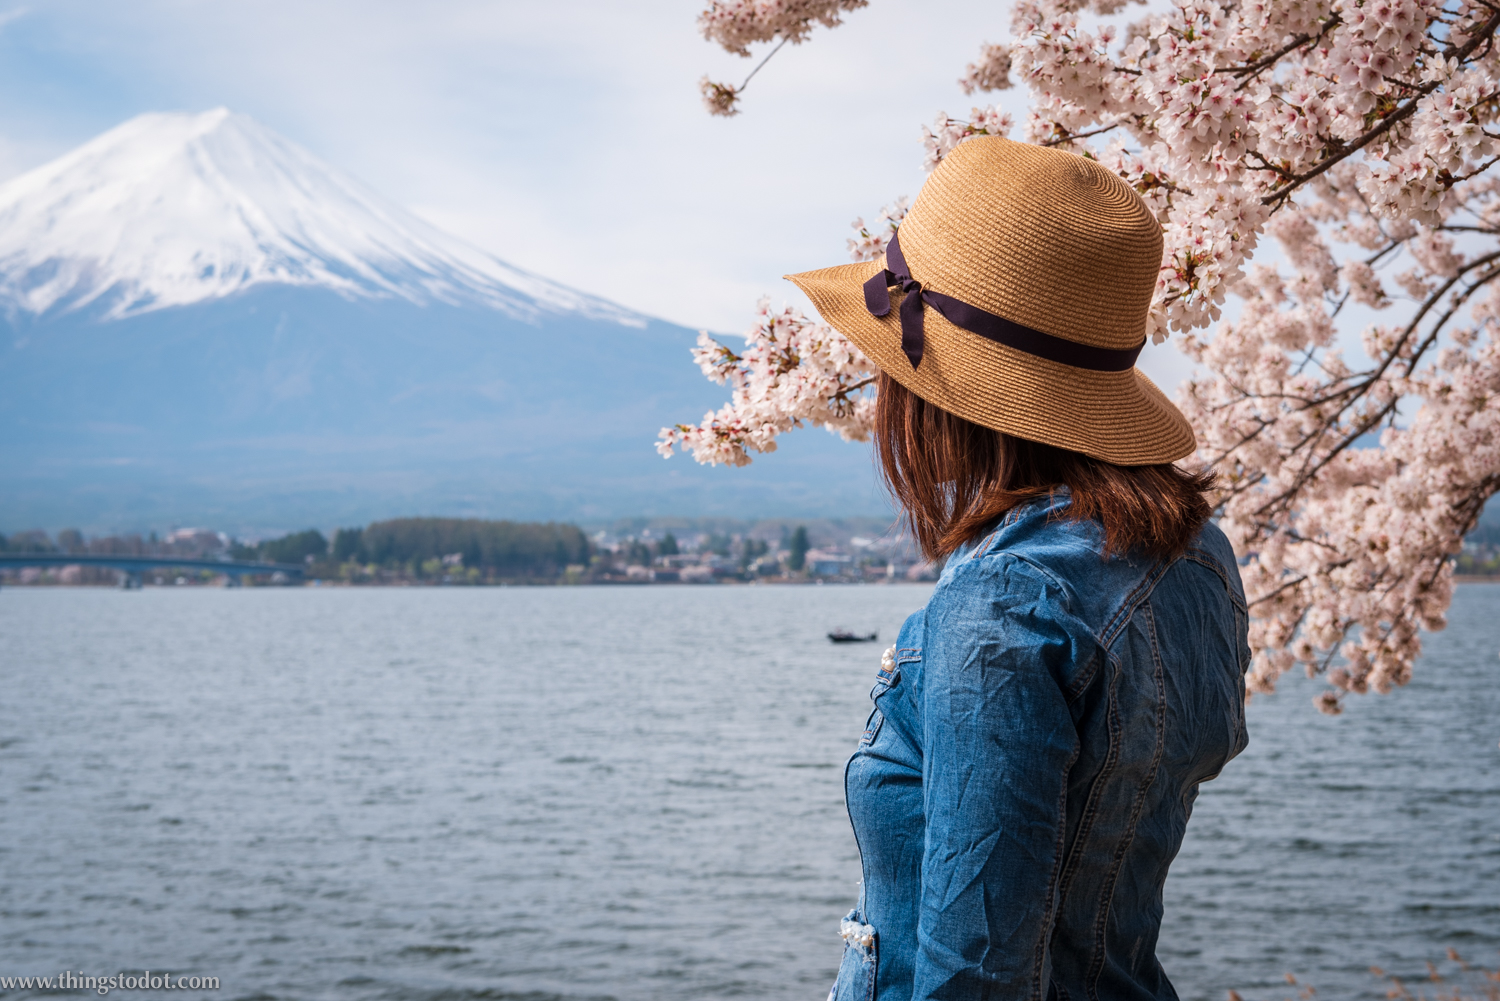 Mt. Fuji, Lake Kawaguchiko, Fuji, Japan. Image©www.thingstodot.com.